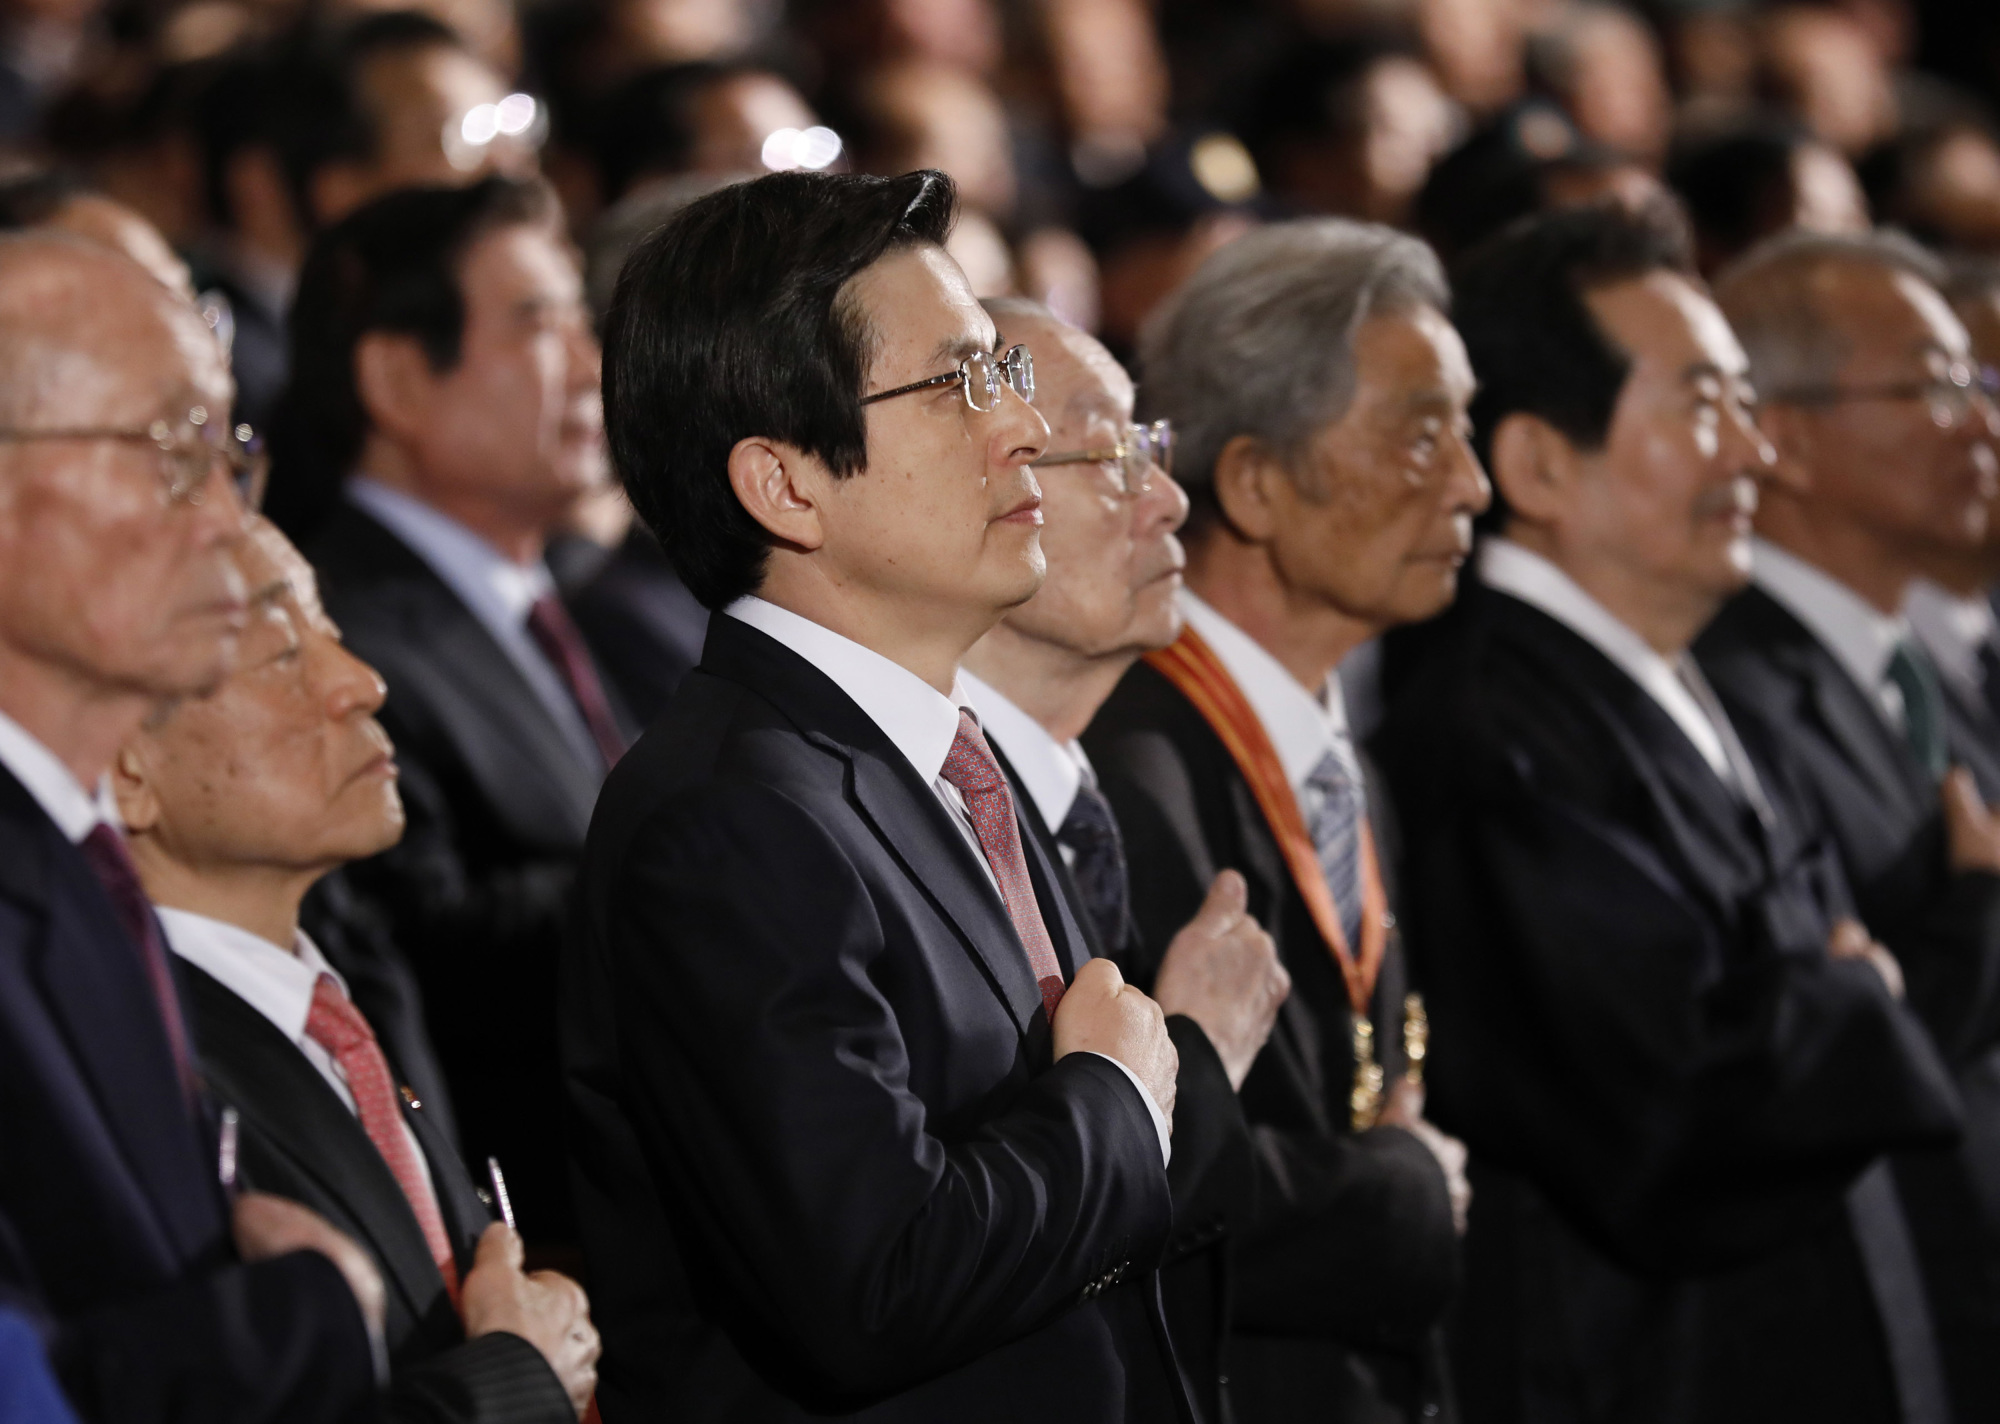 South Korean Prime Minister and acting leader Hwang Kyo-ahn (center) attends a ceremony to mark the anniversary of the 1919 Independence Movement against Japanese rule over the Korean Peninsula in Seoul on Wednesday. | AP